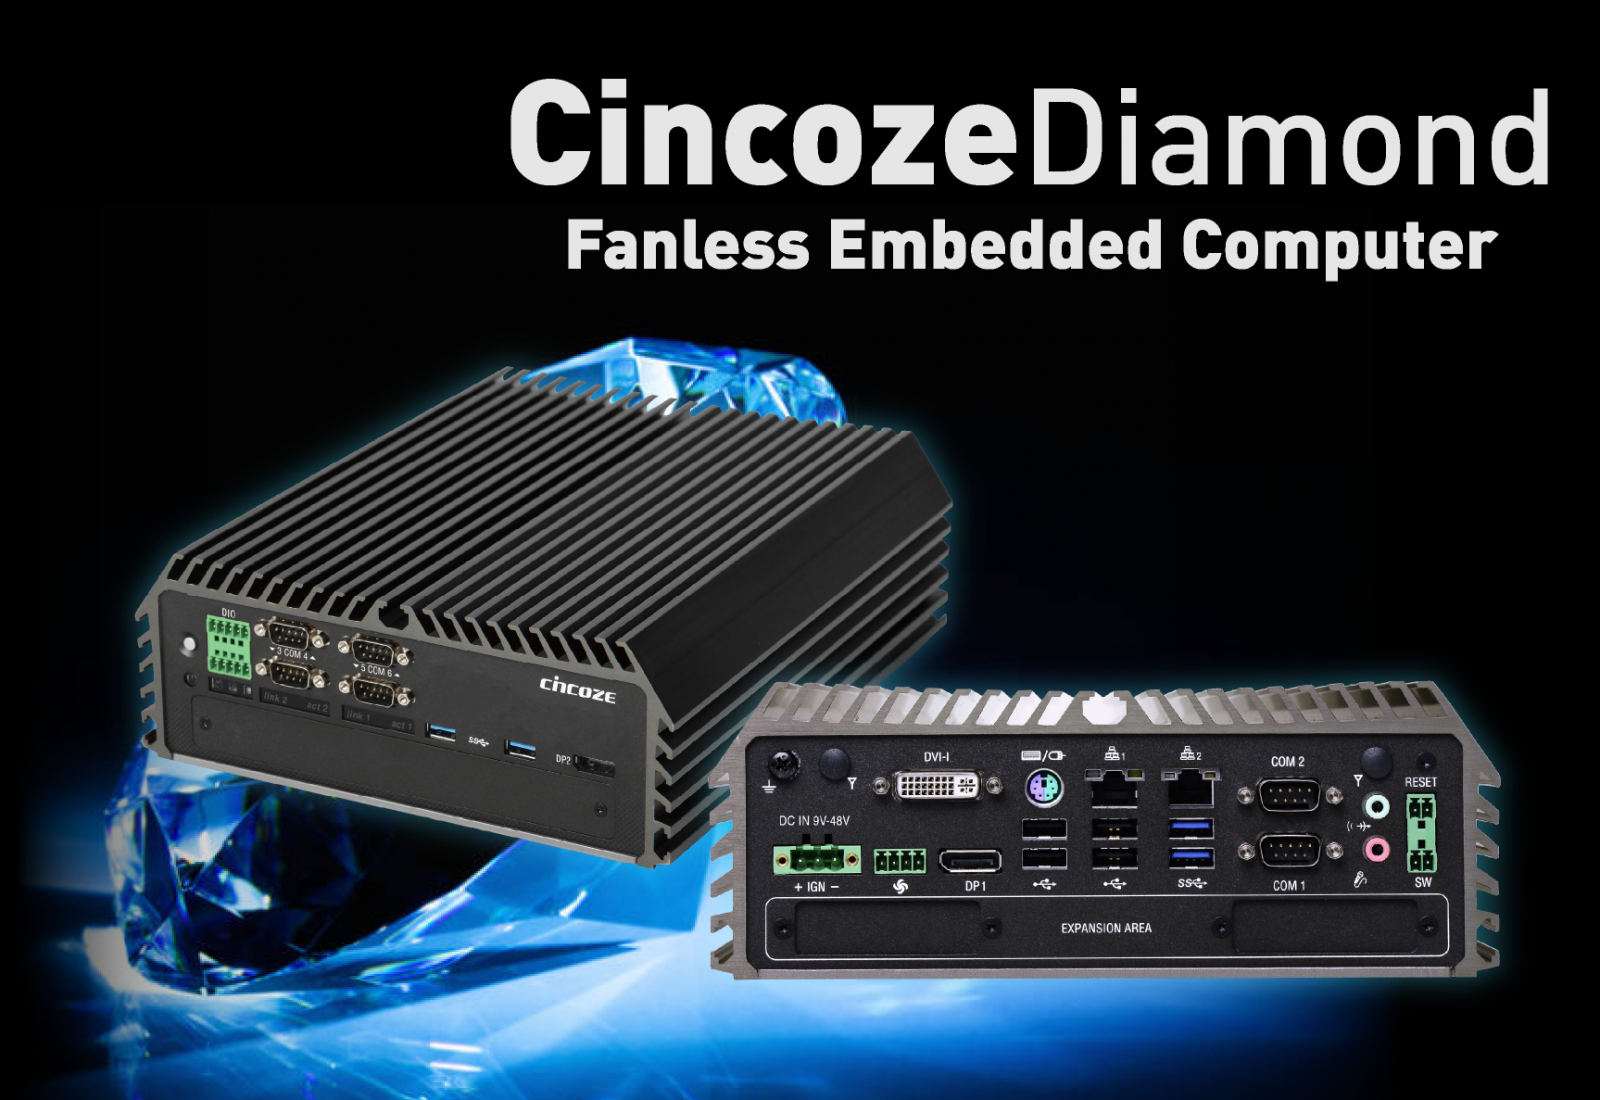 cincoze diamond embedded fanless computer